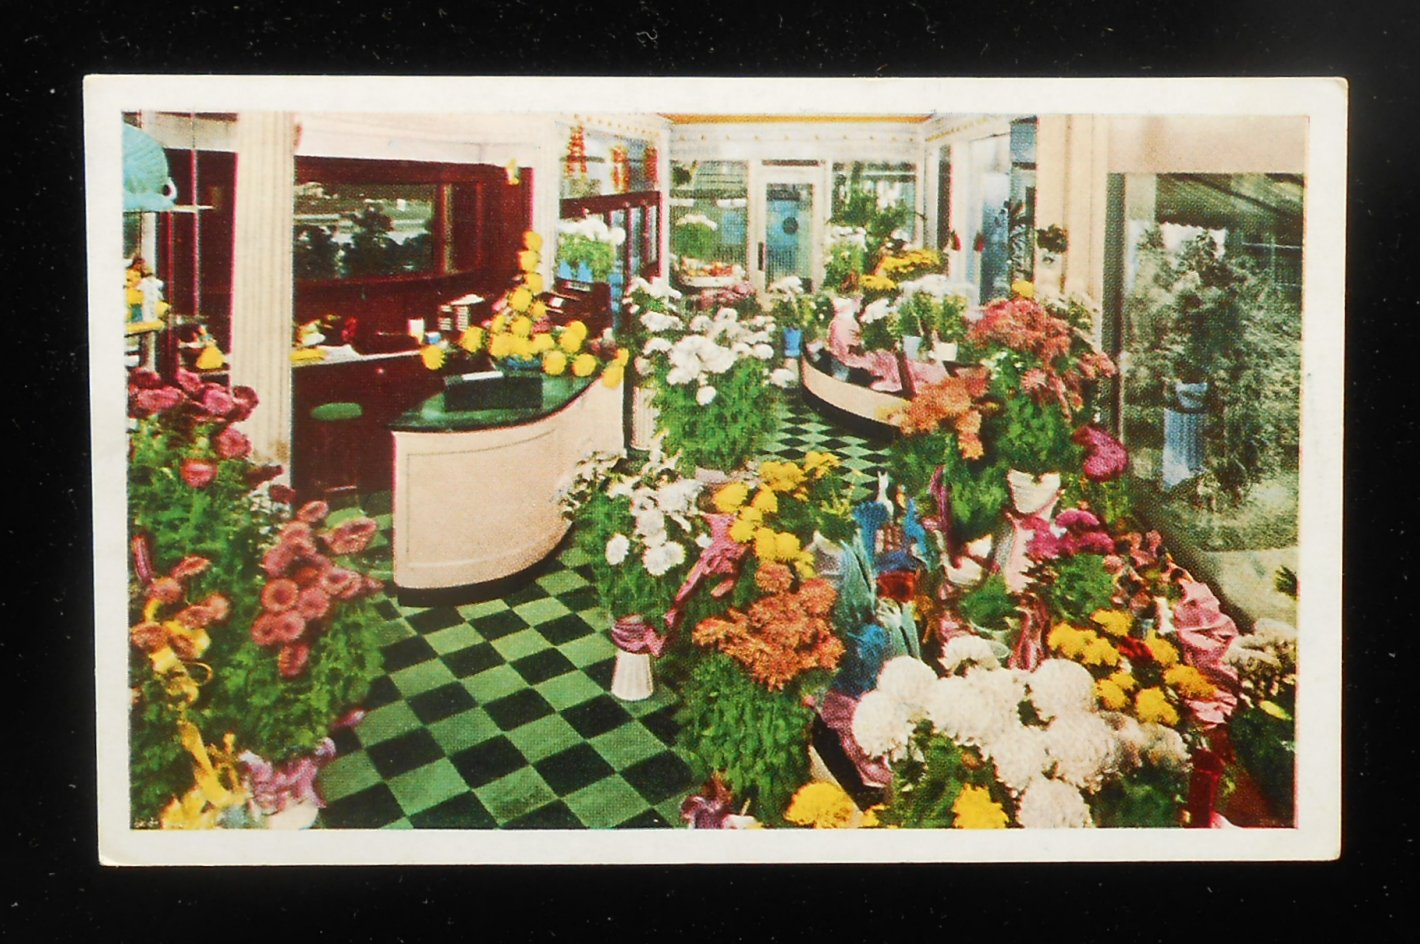 1940s Interior Edgewater Beach Hotel Flower Shop FTD Member Chicago IL Cook C